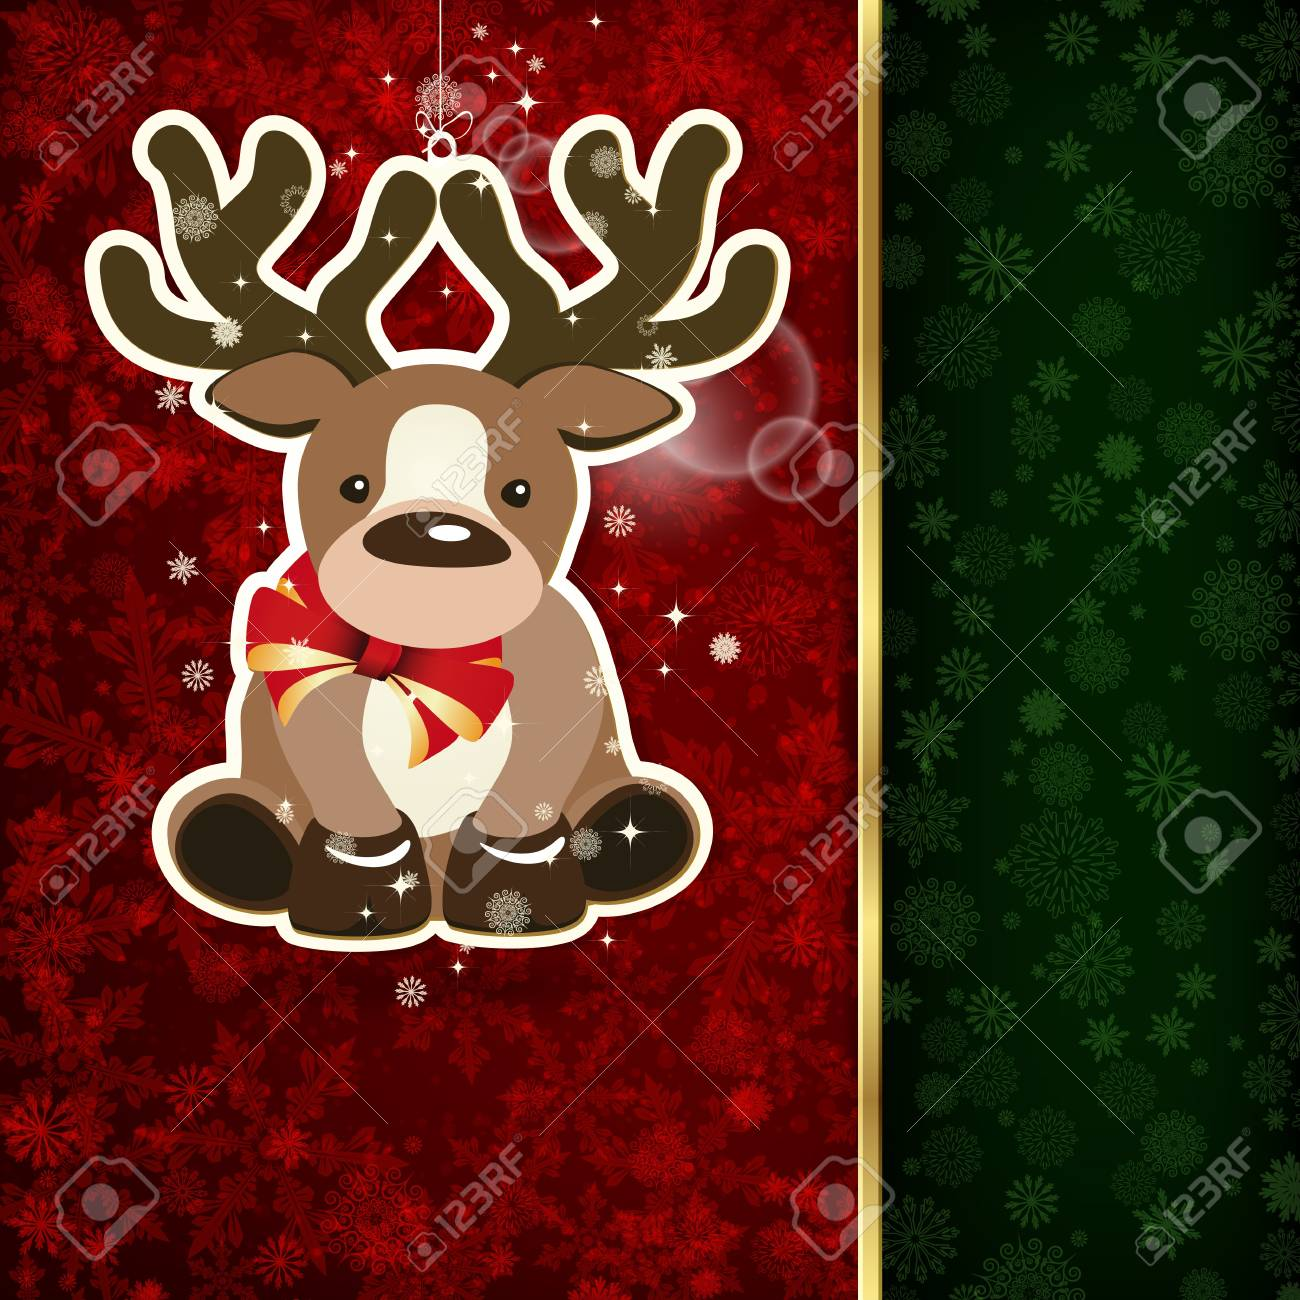 Background with Christmas decoration and snowflakes, illustration. Stock Vector - 15972118